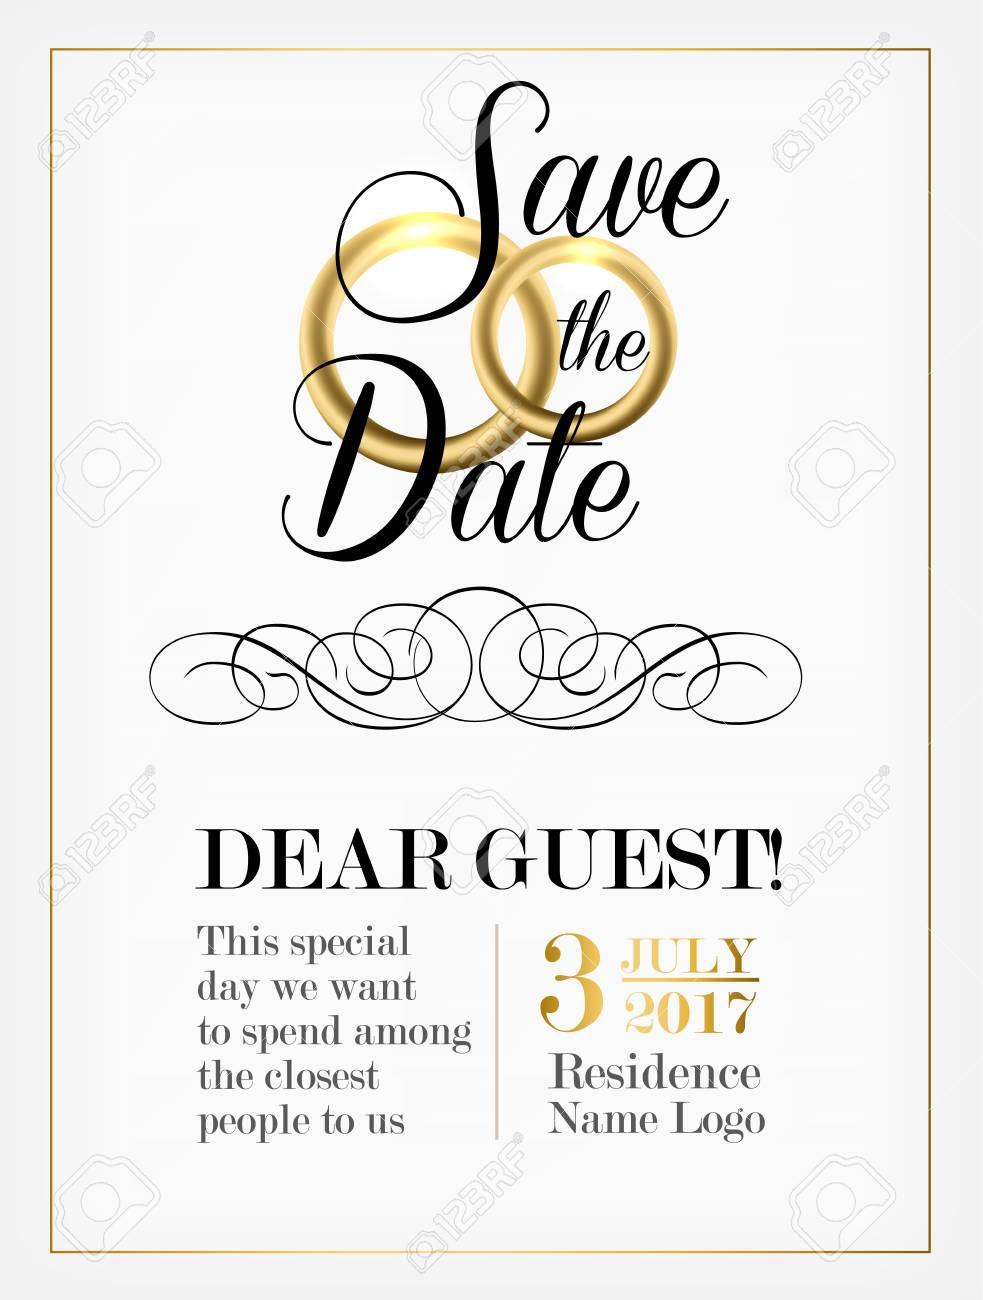 Wedding Invitation Design With Golden Rings And Cursive Text